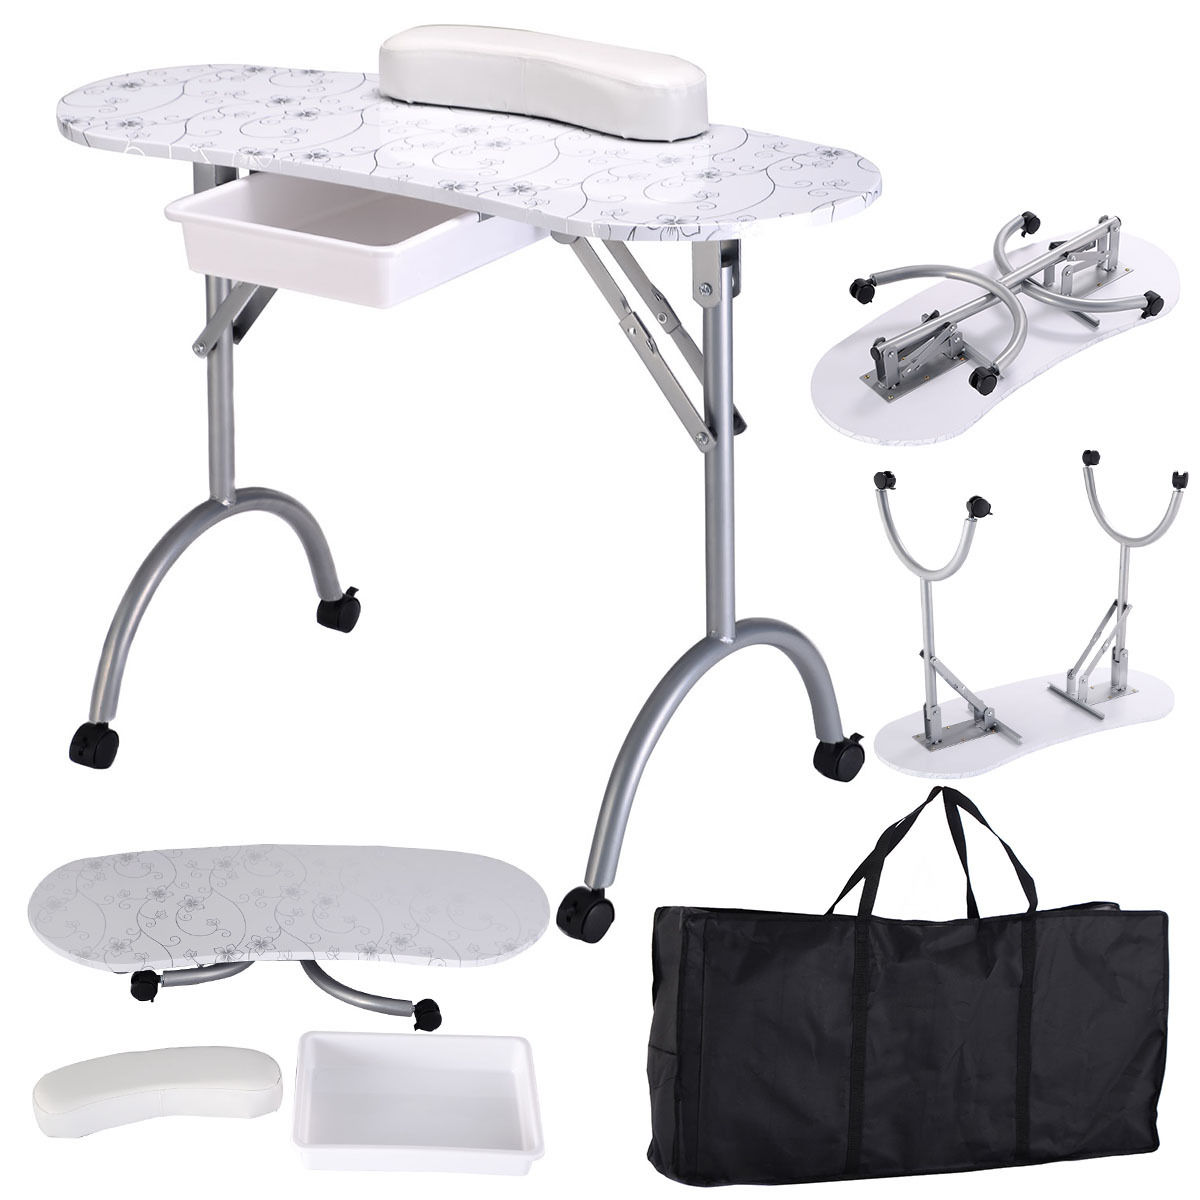 Costway White Manicure Nail Table Portable Station Desk Spa Beauty Salon Equipment